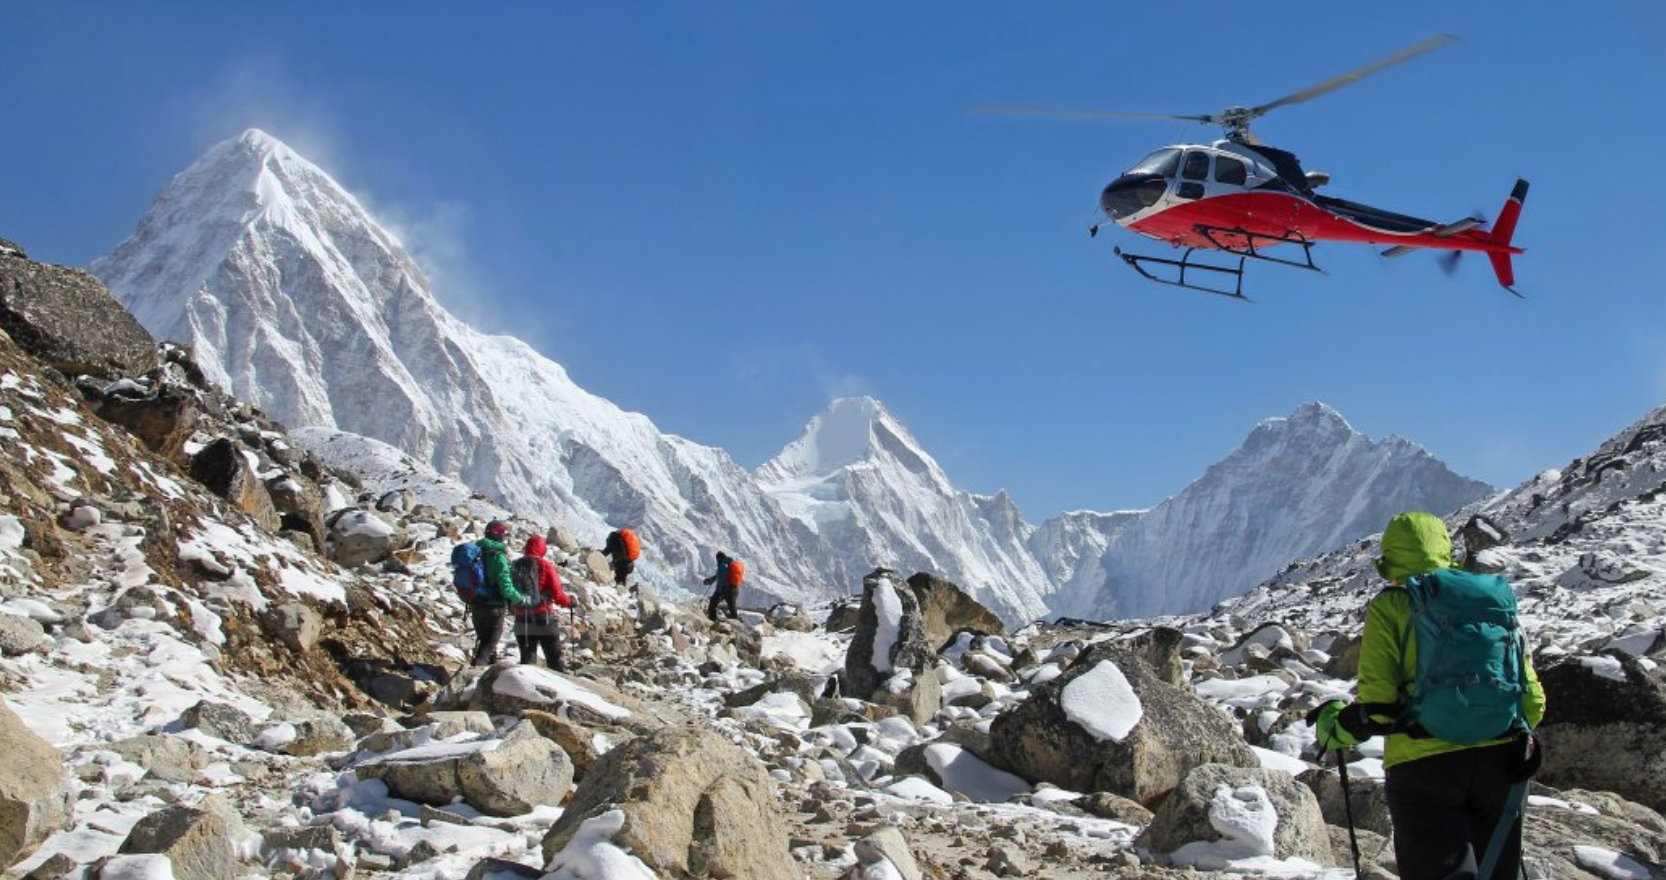 Nepal's Guides Are Making Big Money on Insurance Scams